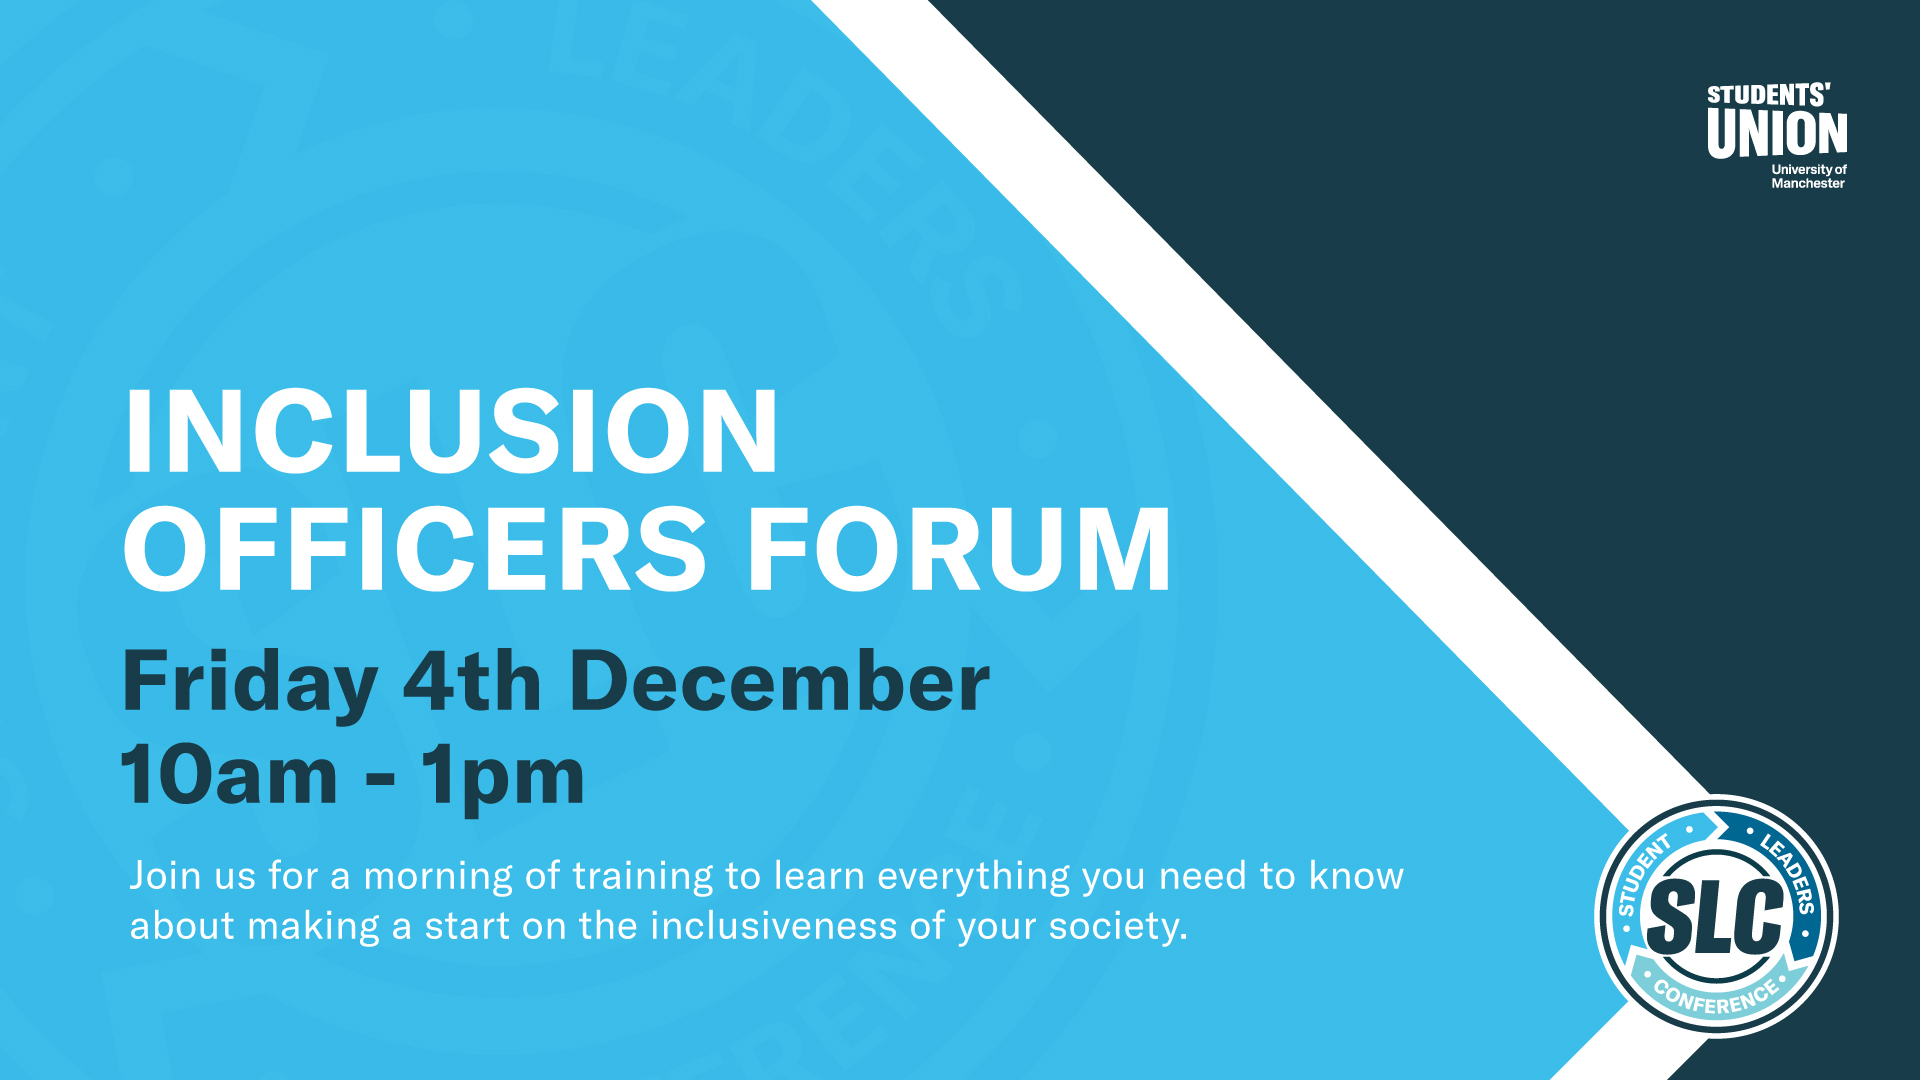 Inclusion Officers Forum